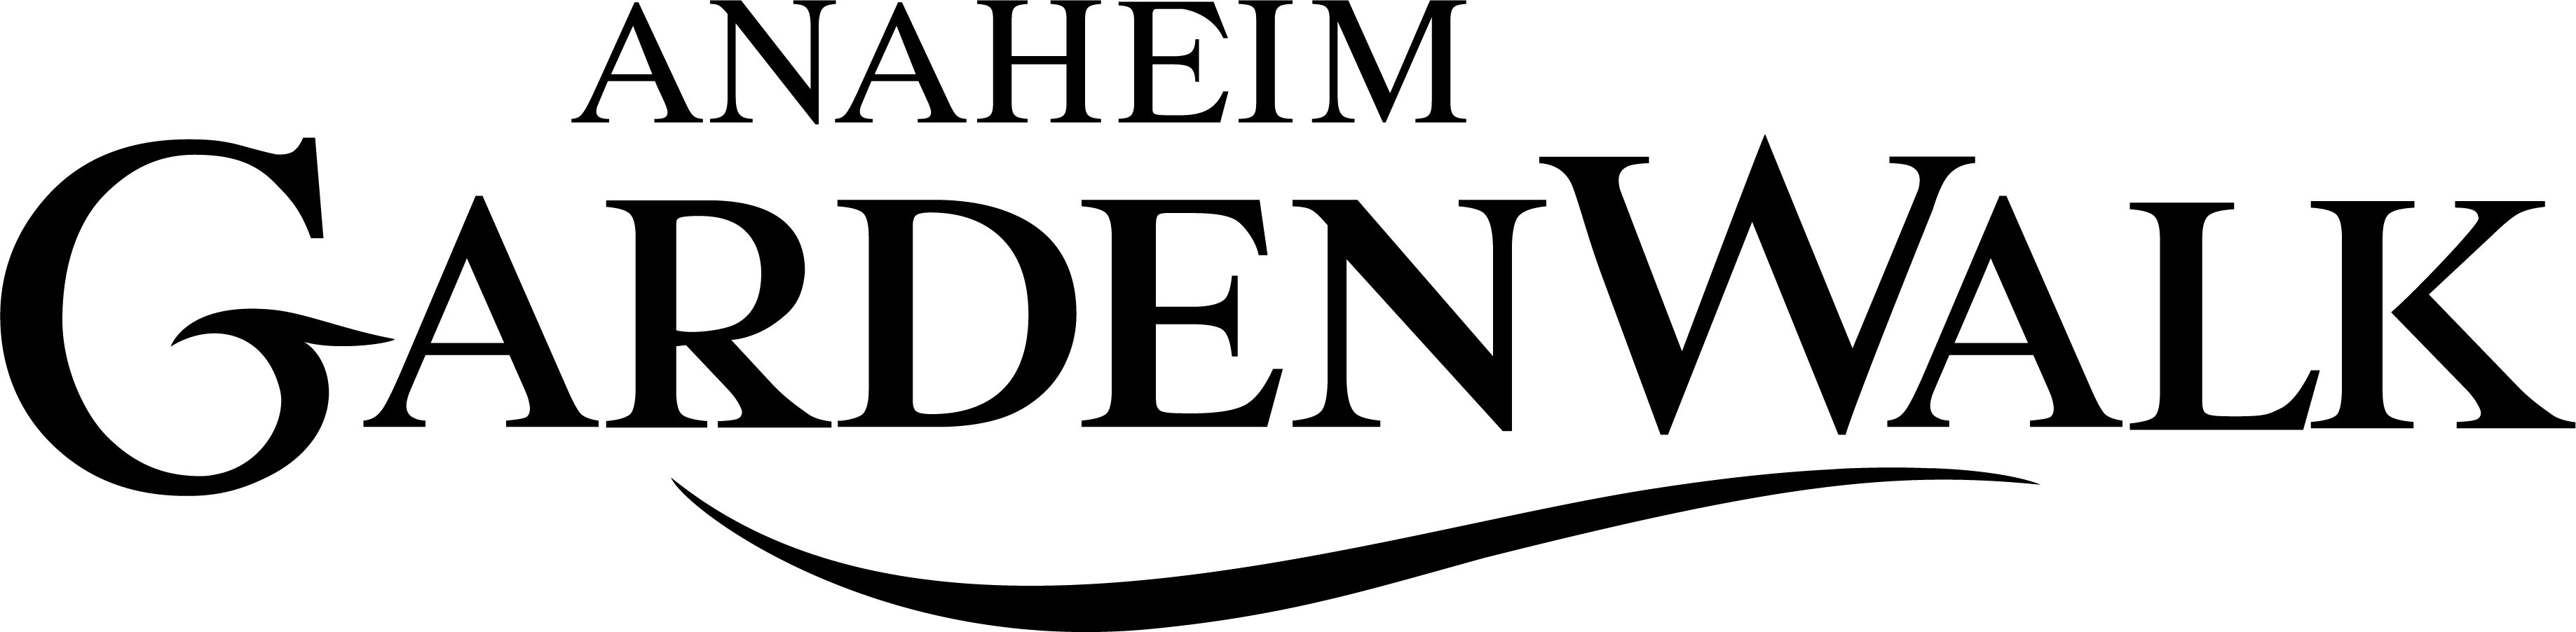 Anaheim GardenWalk Transparent Logo